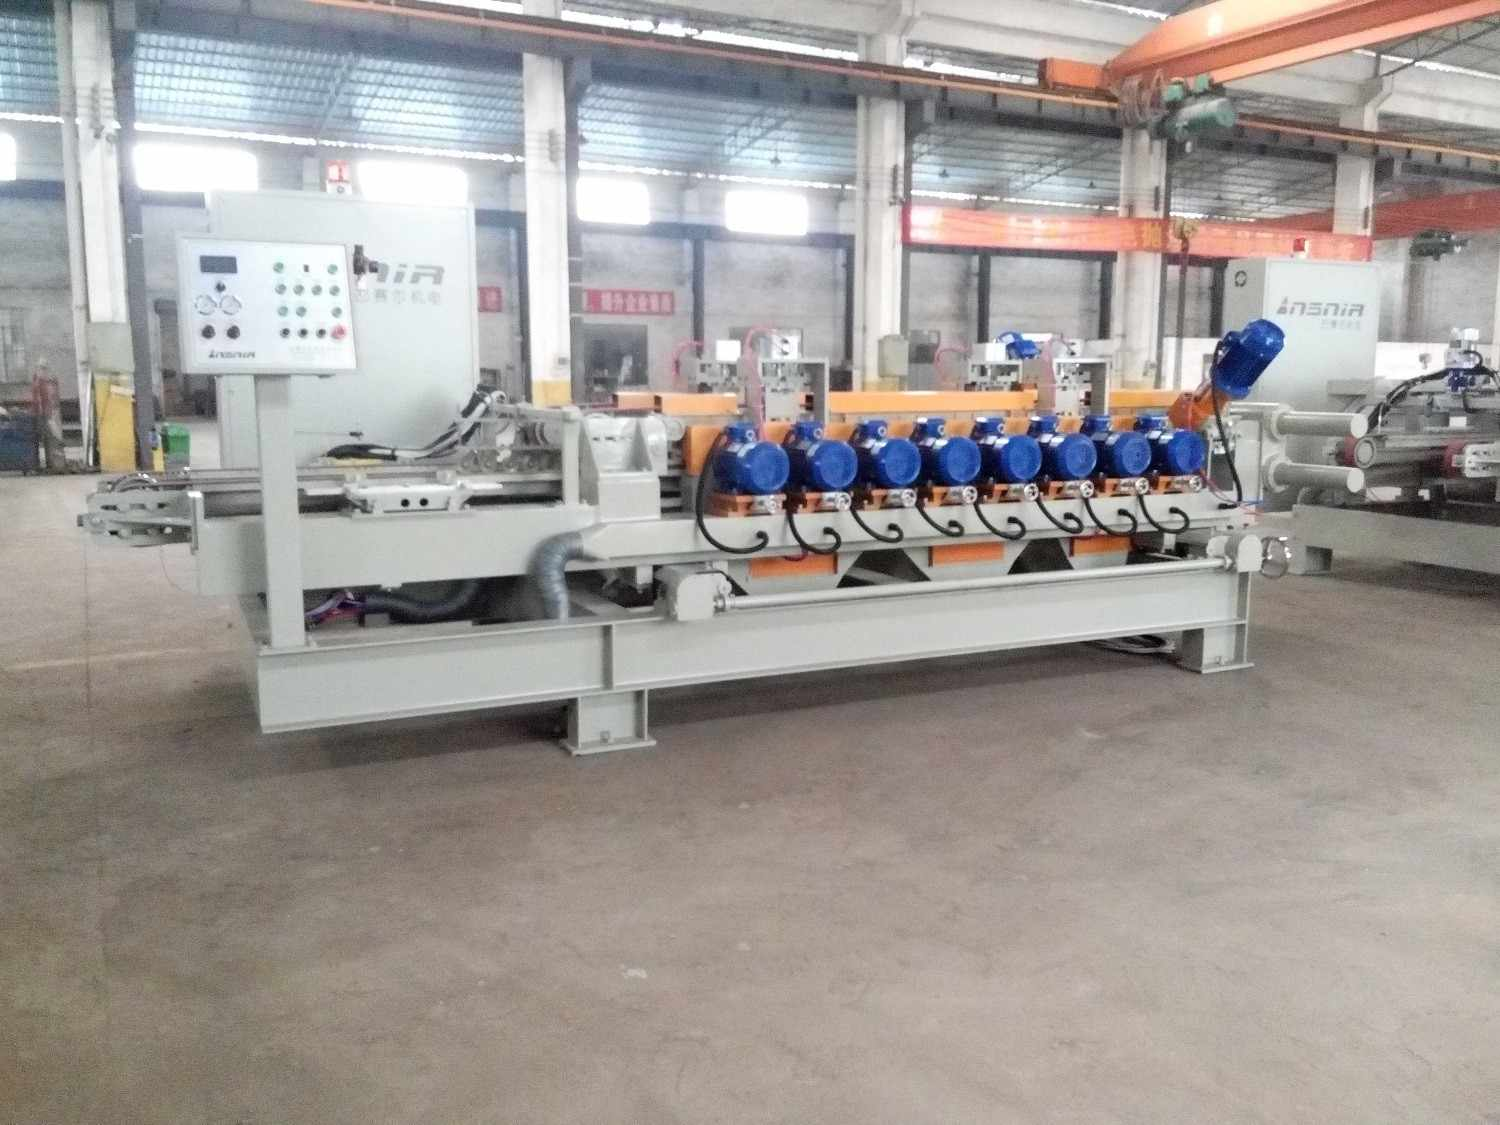 Dry Squaring Machine Bsm850(8+1) | Ceramic Tile Machine | Squaring ...